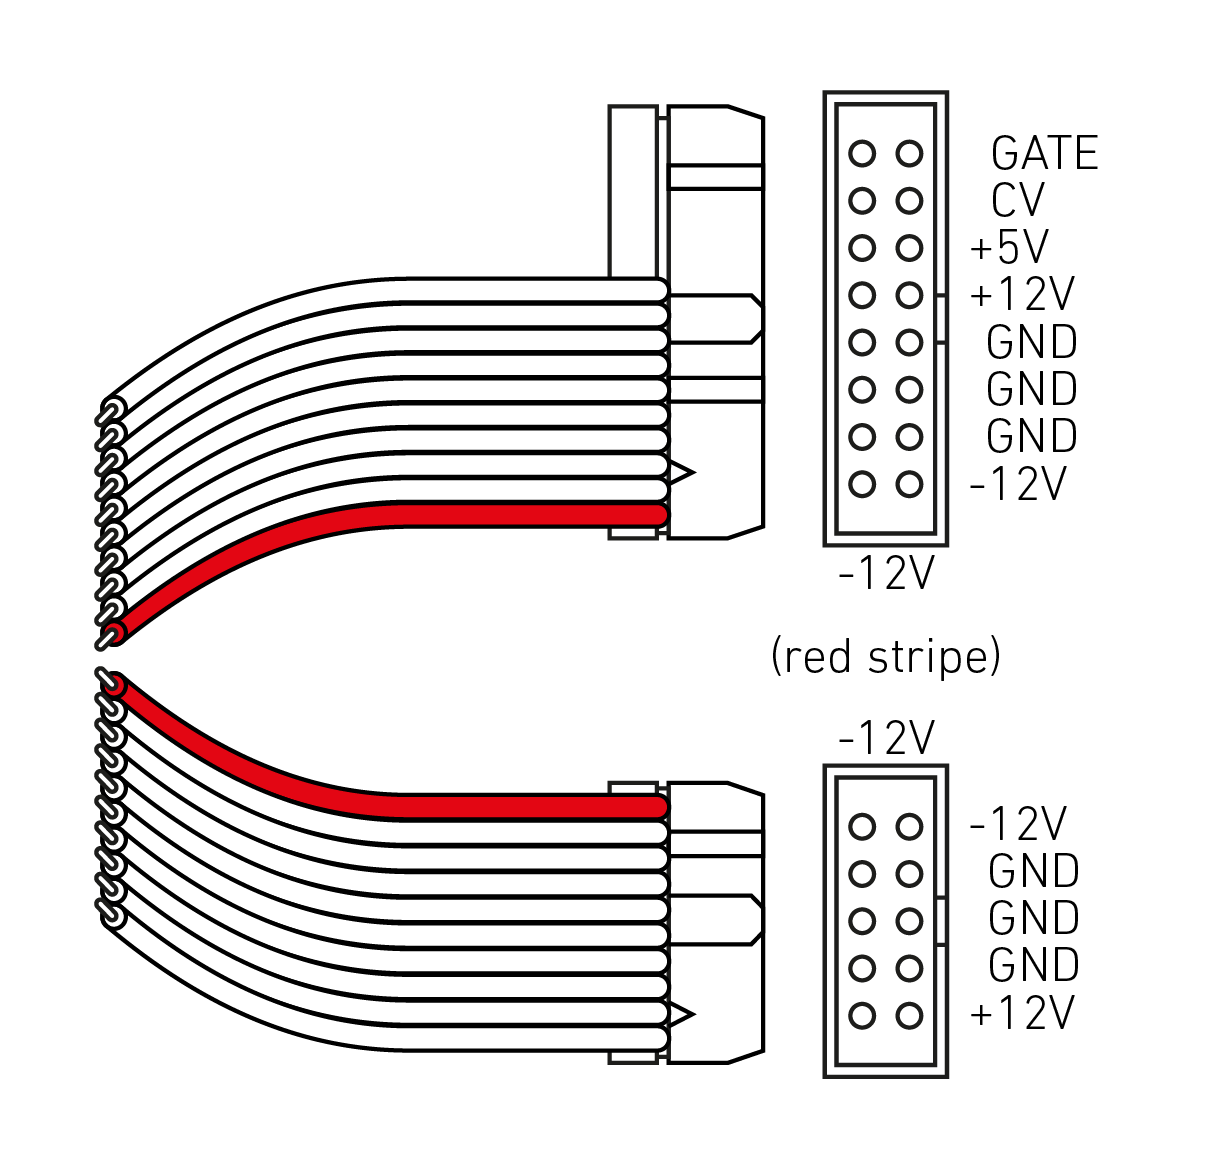 th-vco1/DIY_Manuals/Powercable.png